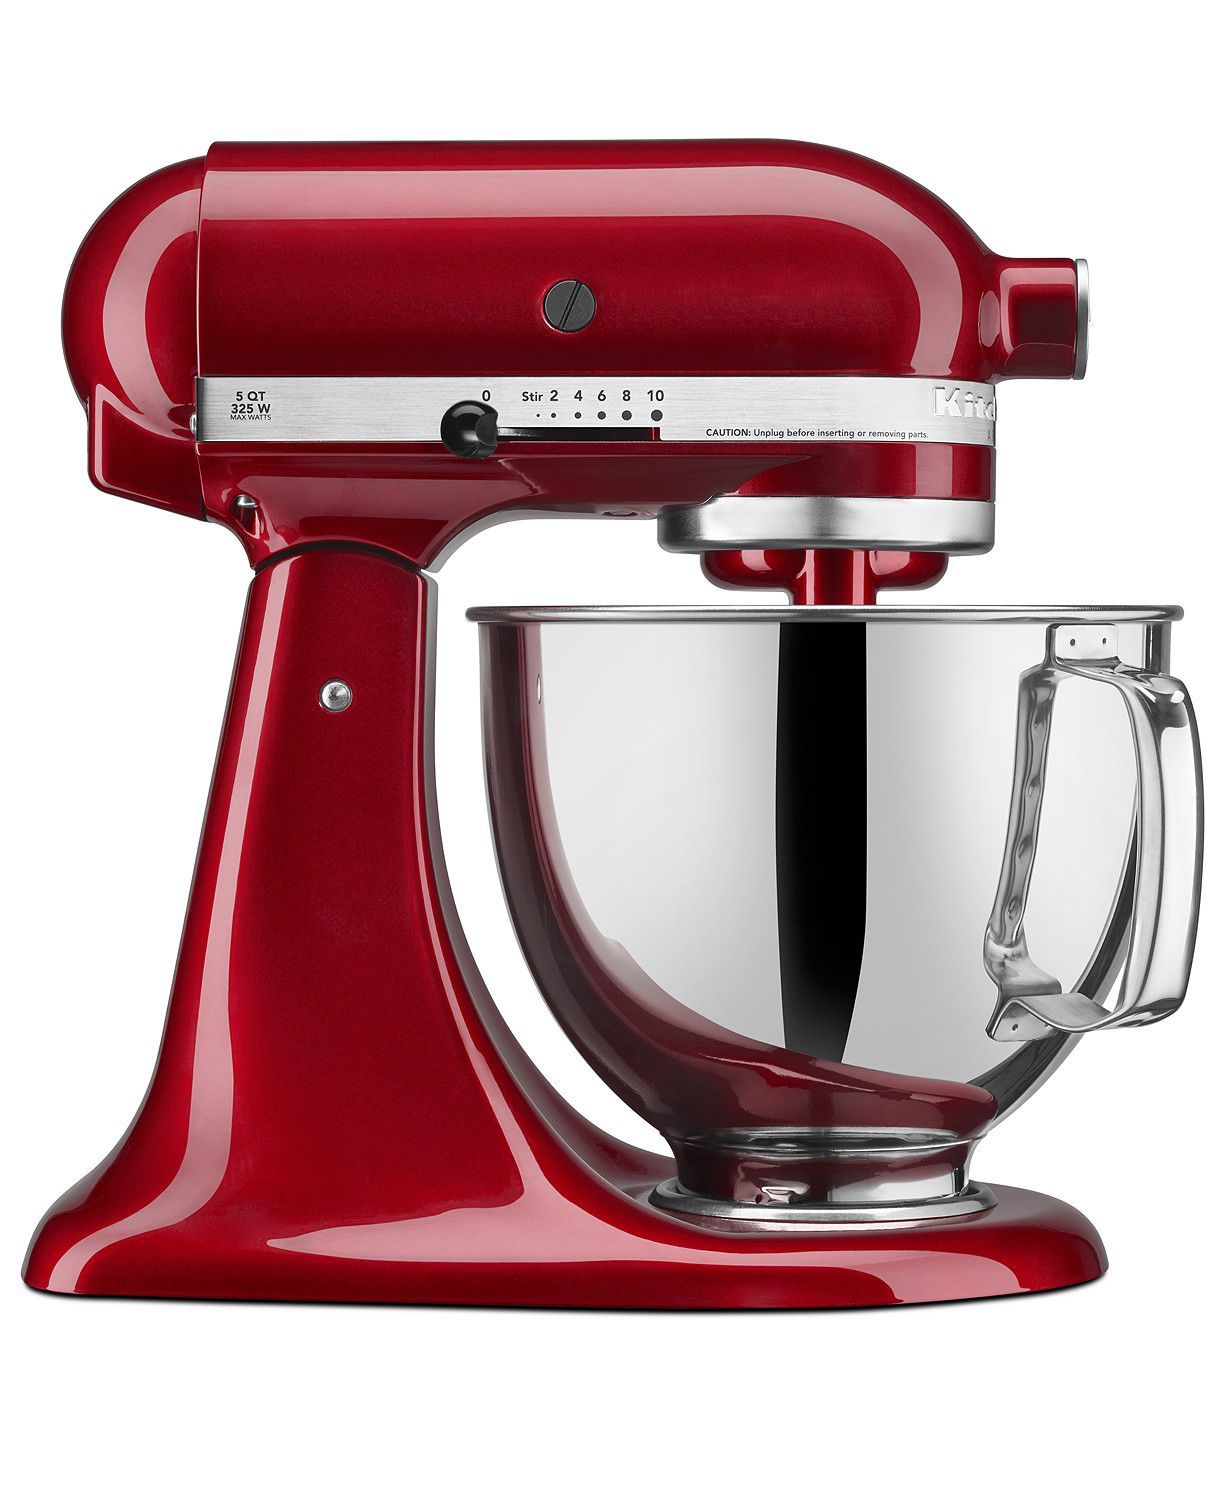 Kitchen Mixers For Sale: Get 50% Off KitchenAid Stand